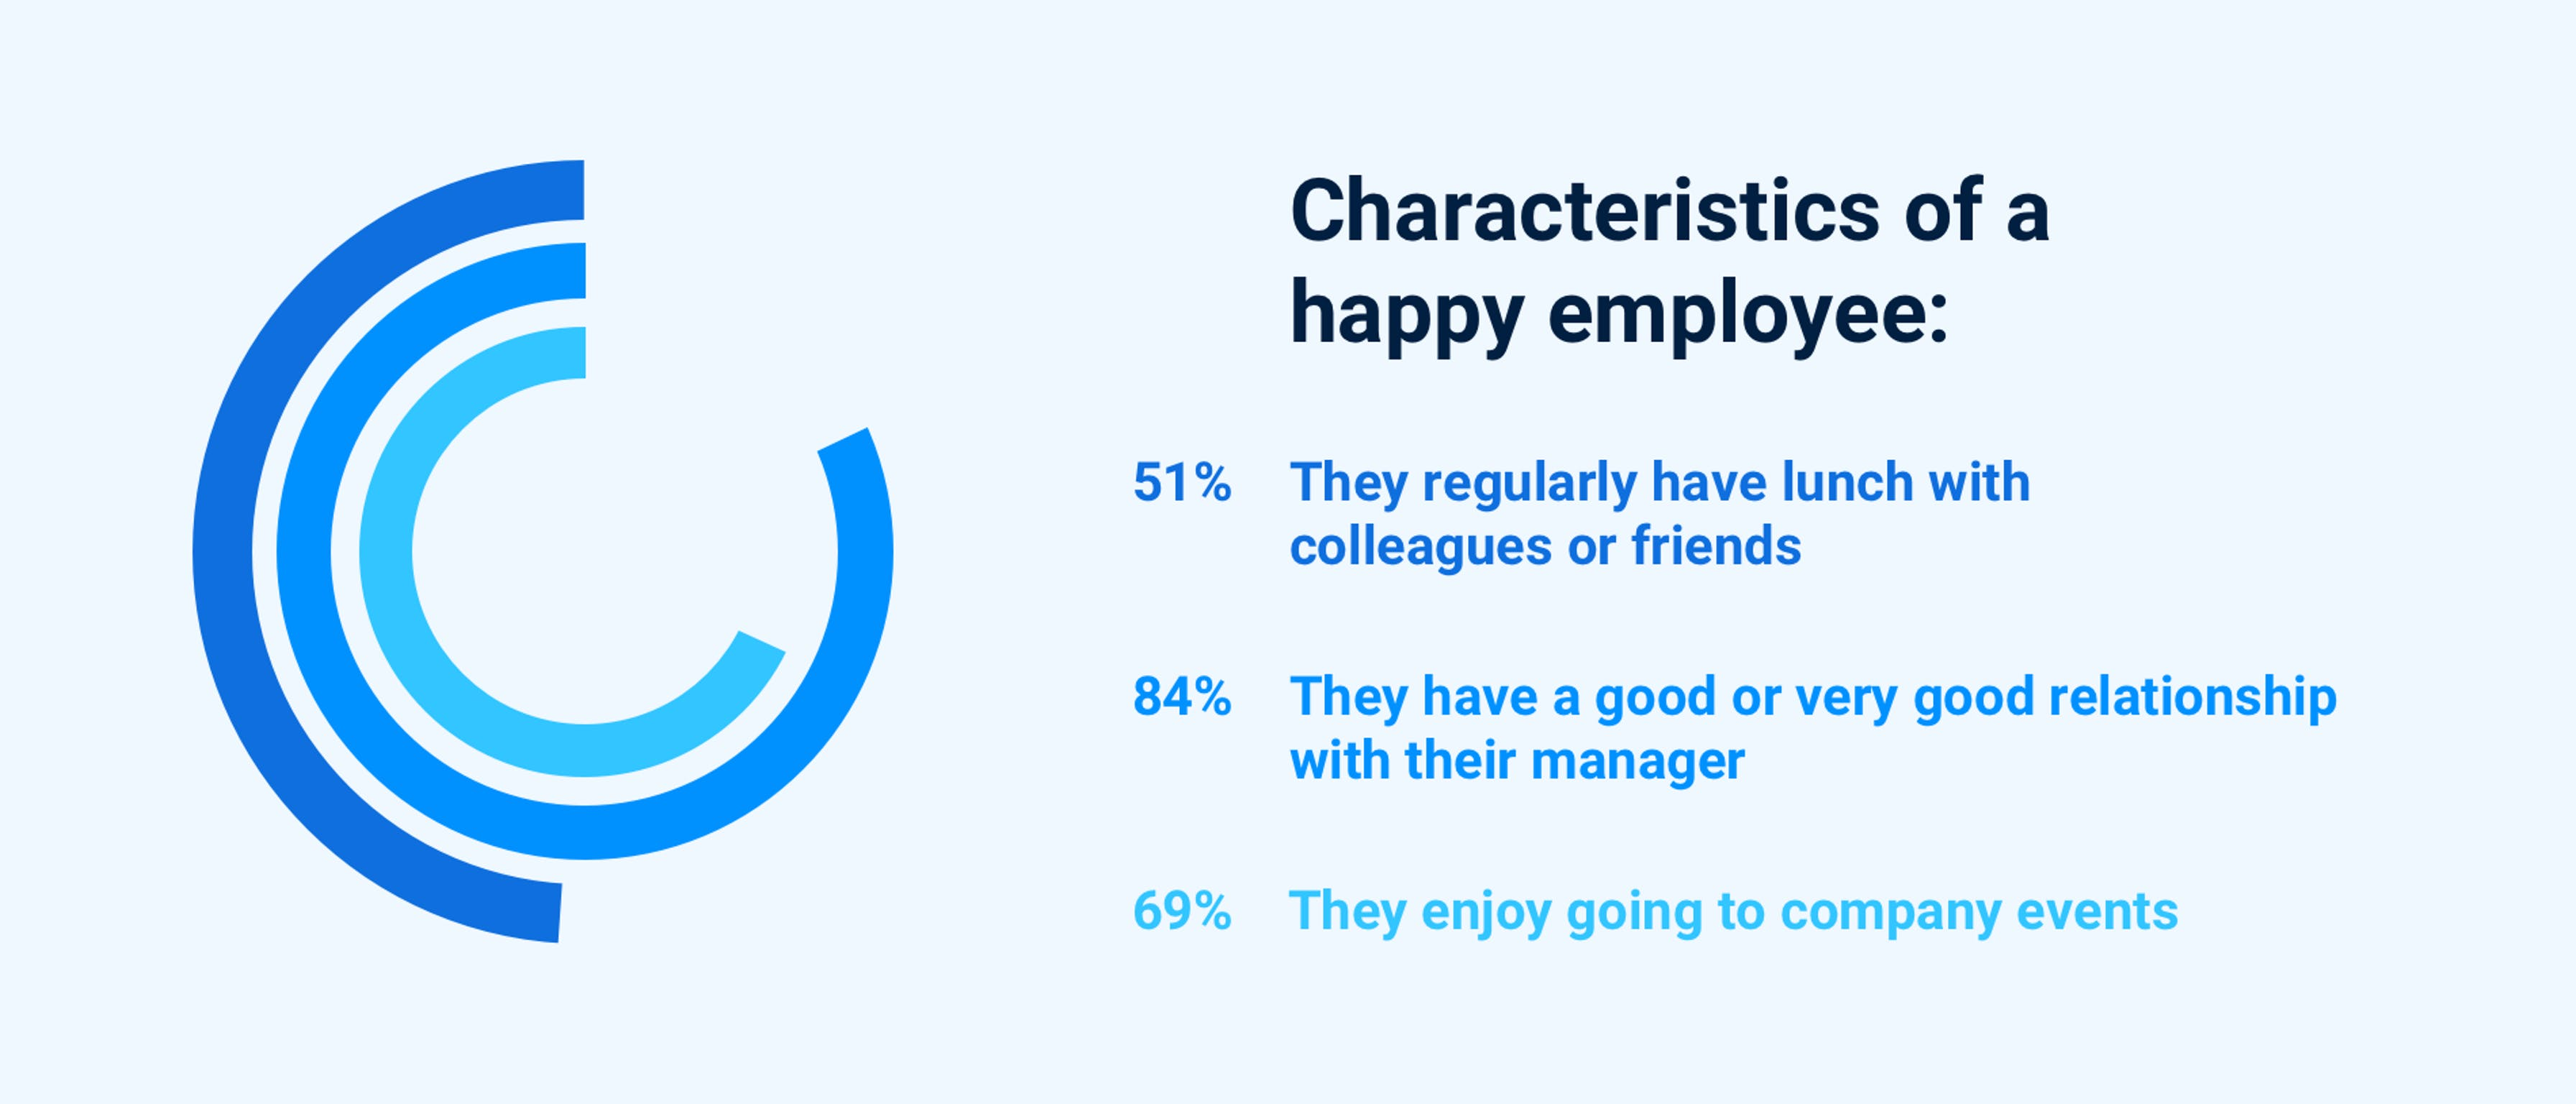 Happy employees enjoy going to team events.